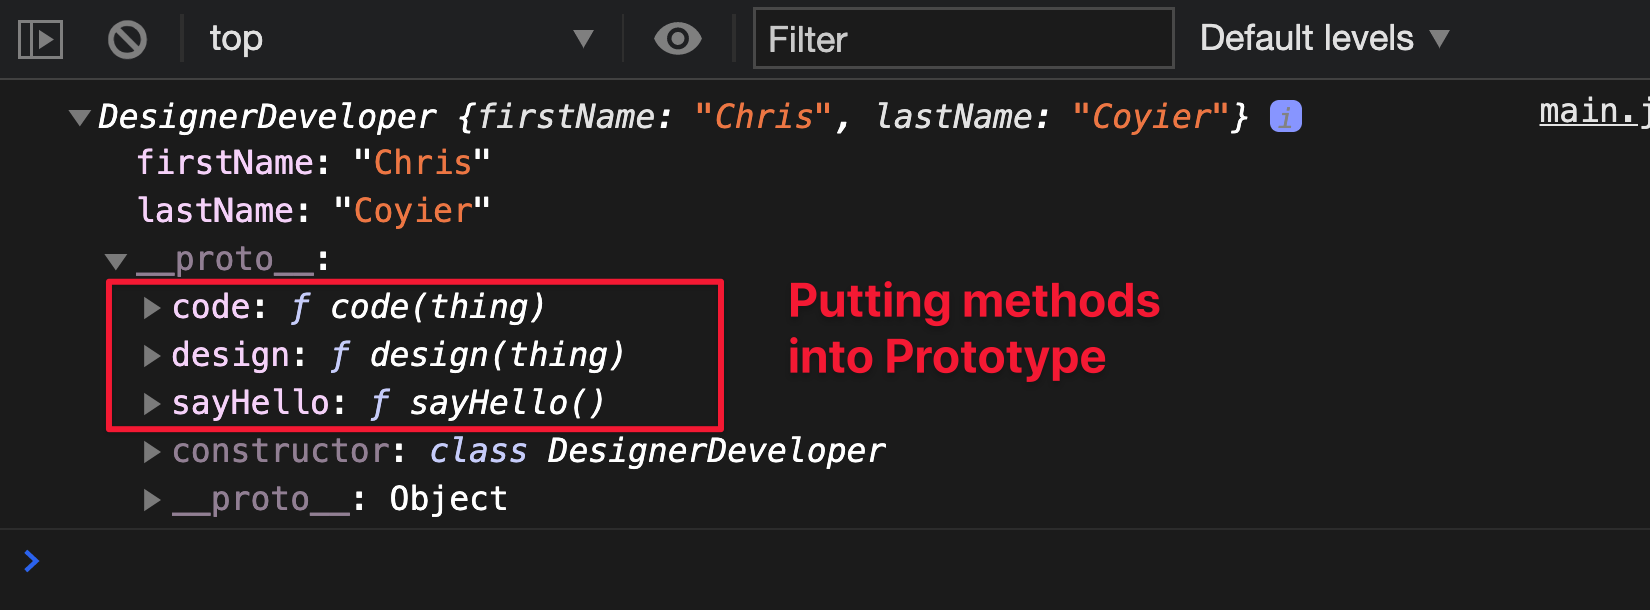 Composition via Classes by putting methods into the Prototype.